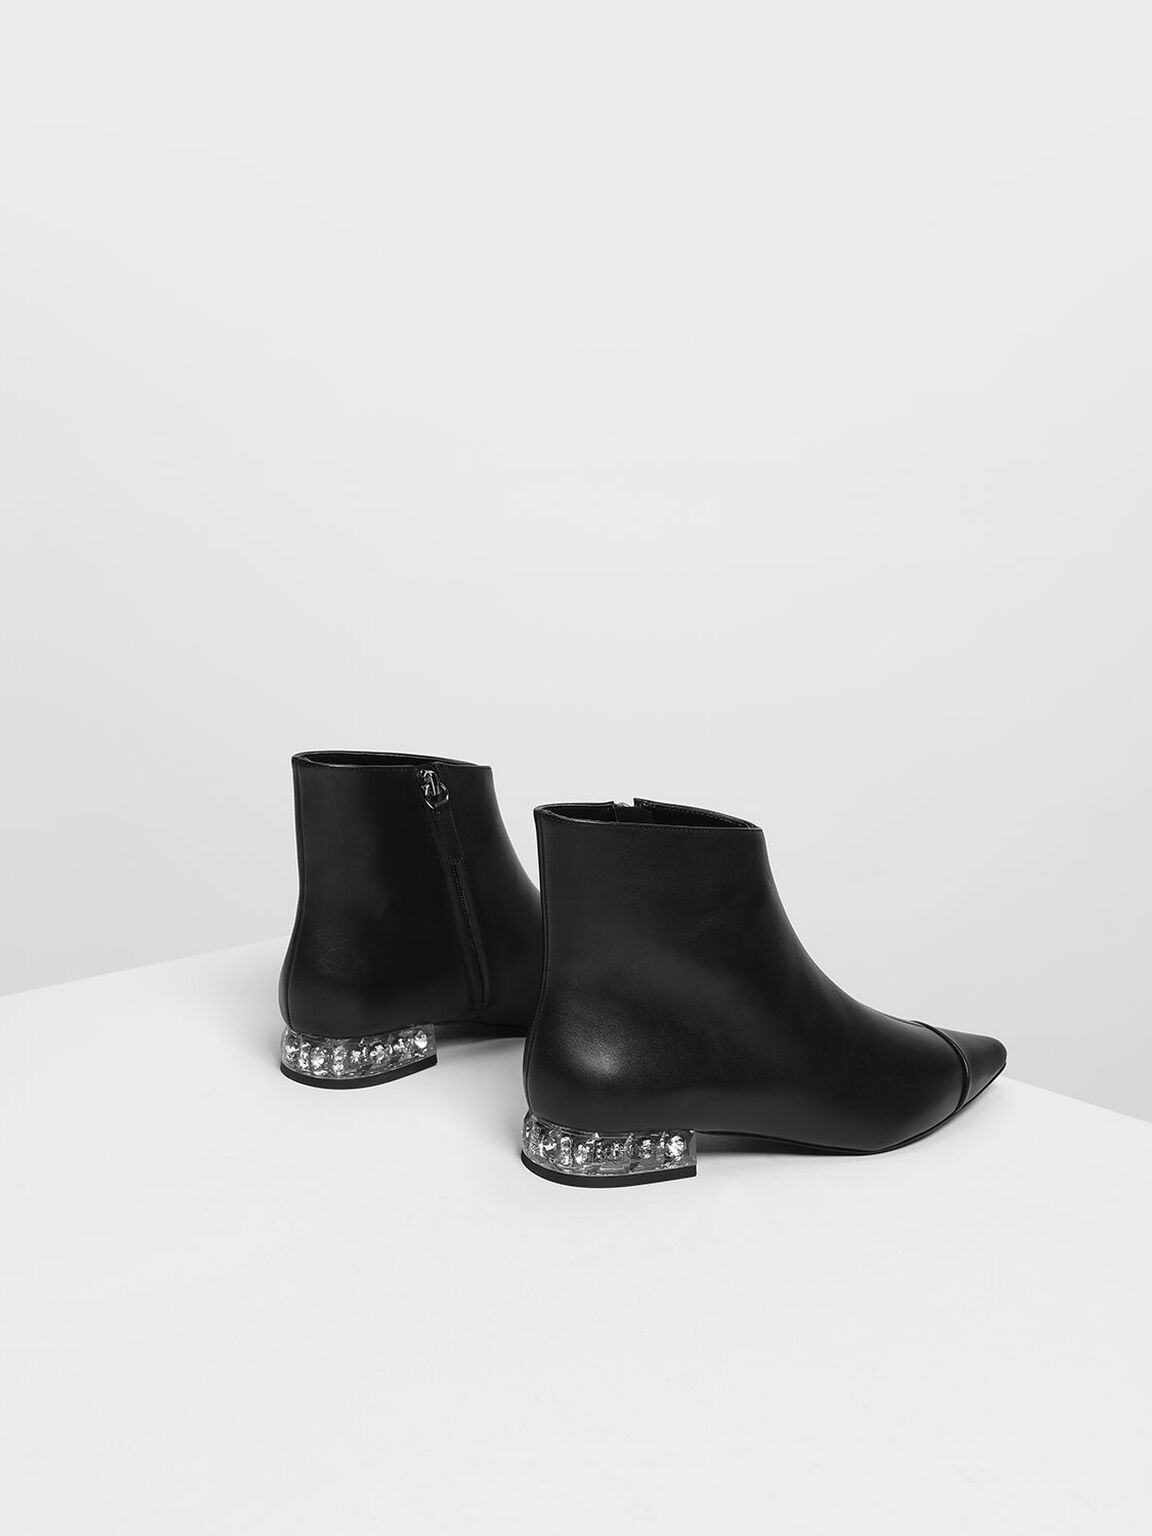 Faceted Lucite Heel Leather Boots, Black, hi-res